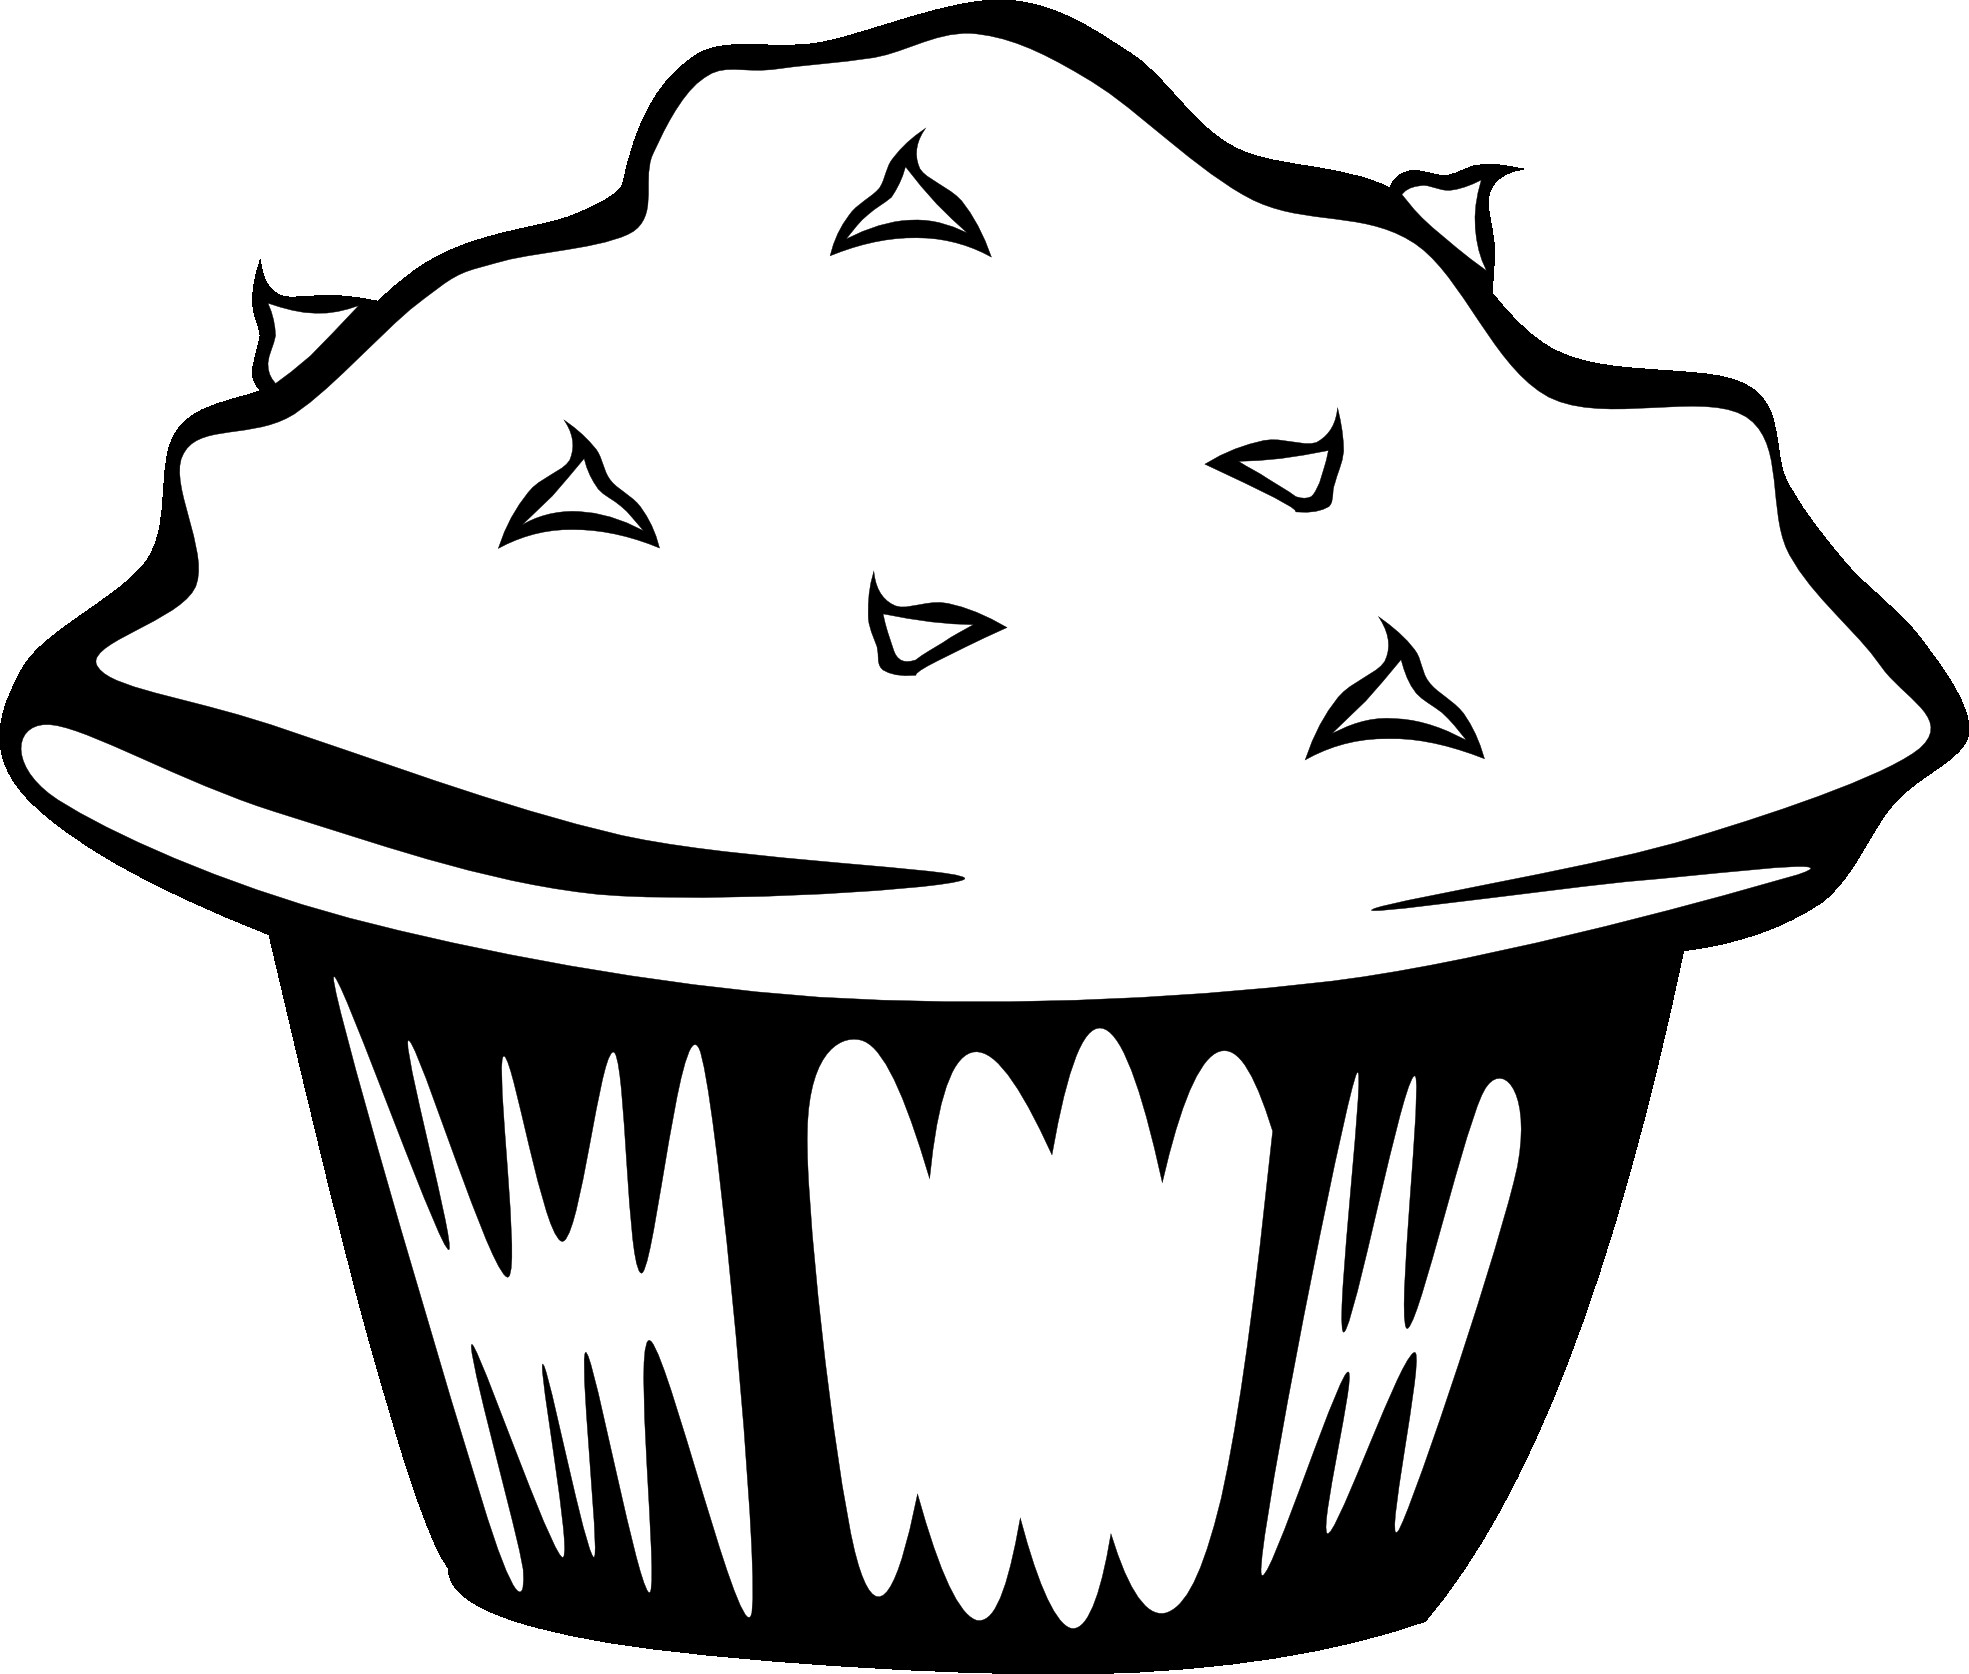 Food Clipart Black And White-food clipart black and white-7